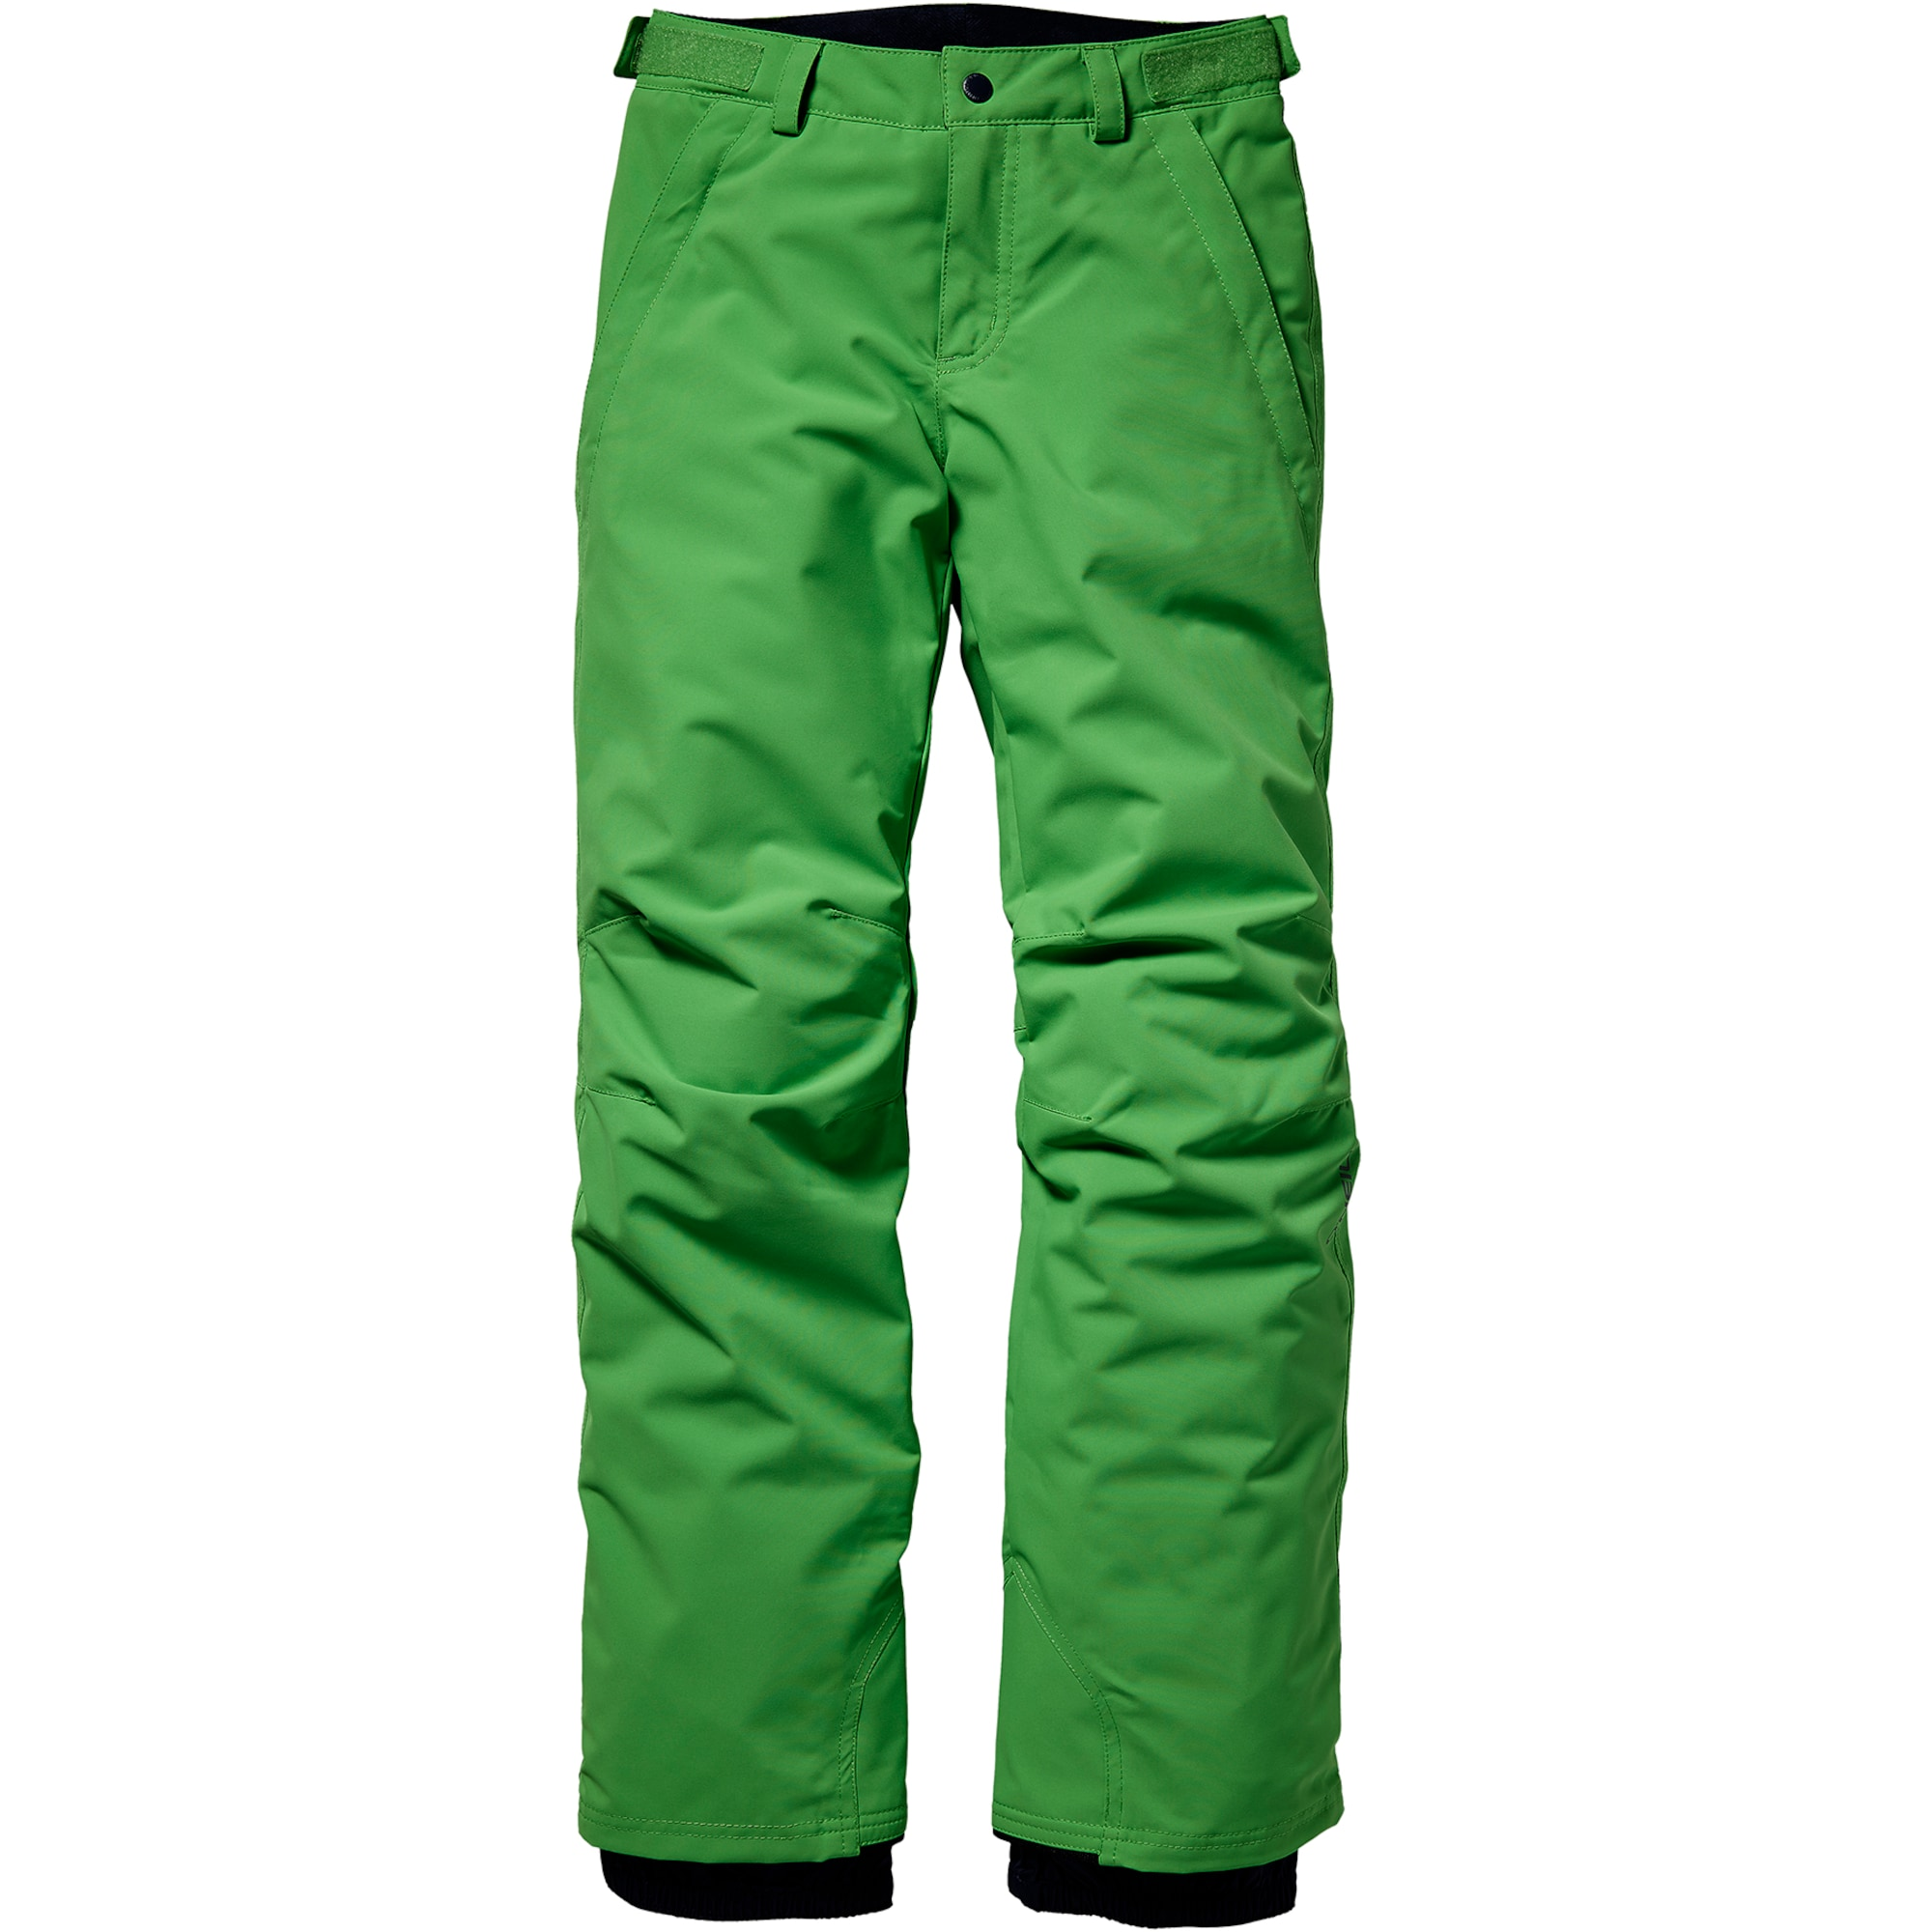 ONEILL Outodoor kalhoty PB ANVIL PANTS zelená O'NEILL